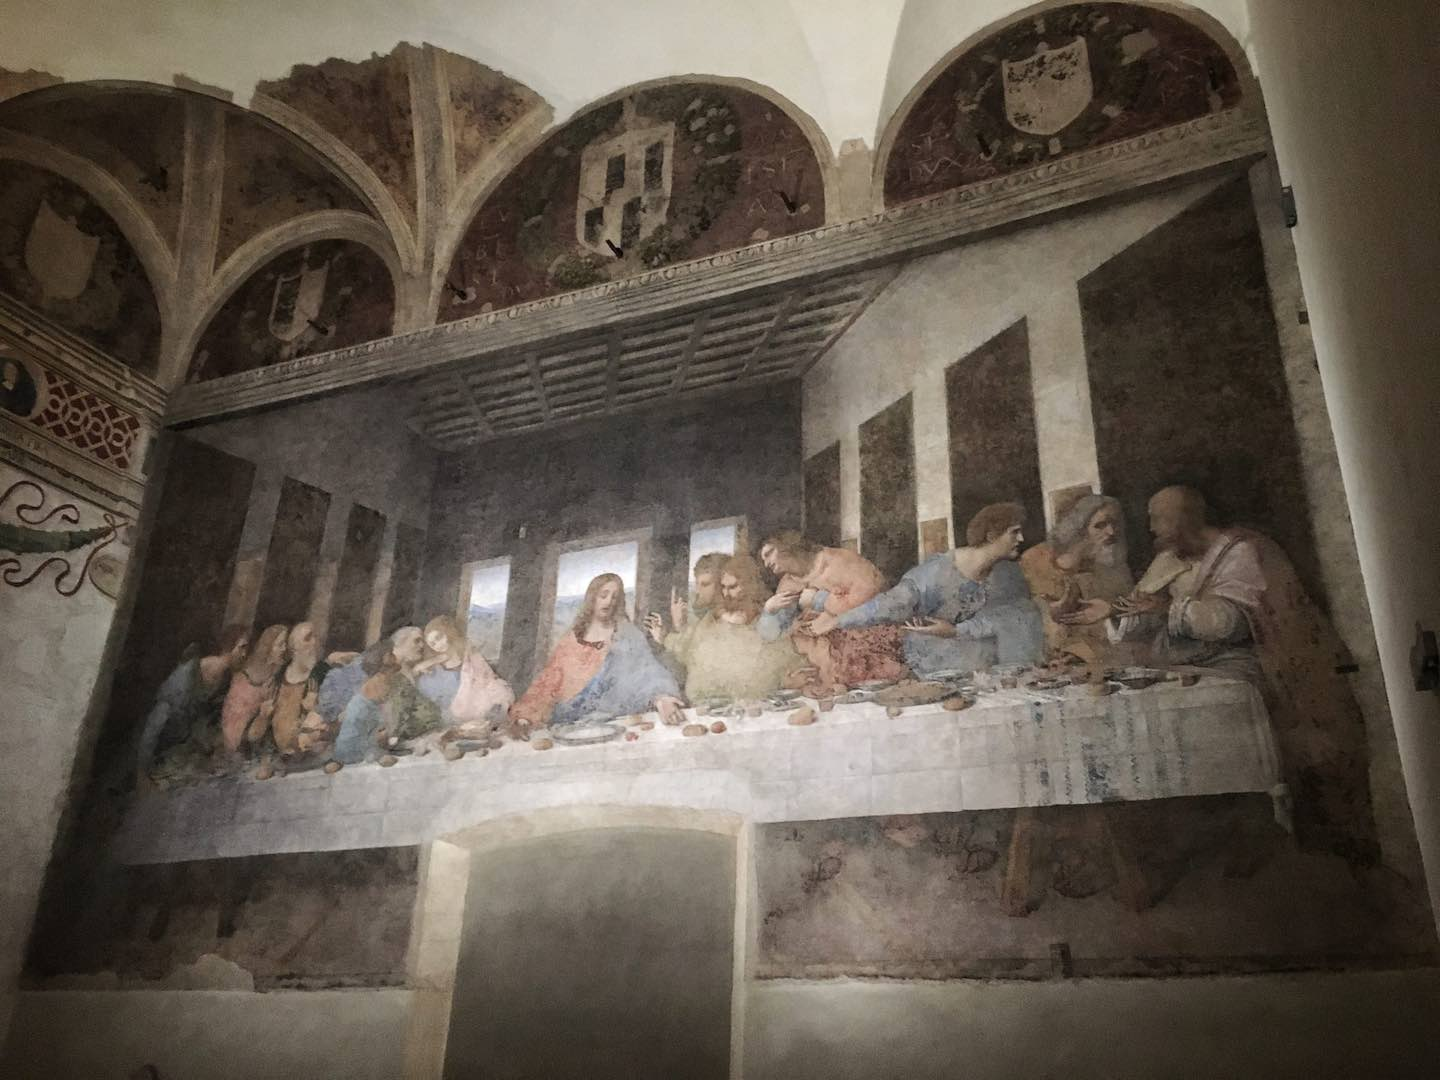 Da Vinci's 'The Last Supper' | Image © ExpatAlli.com